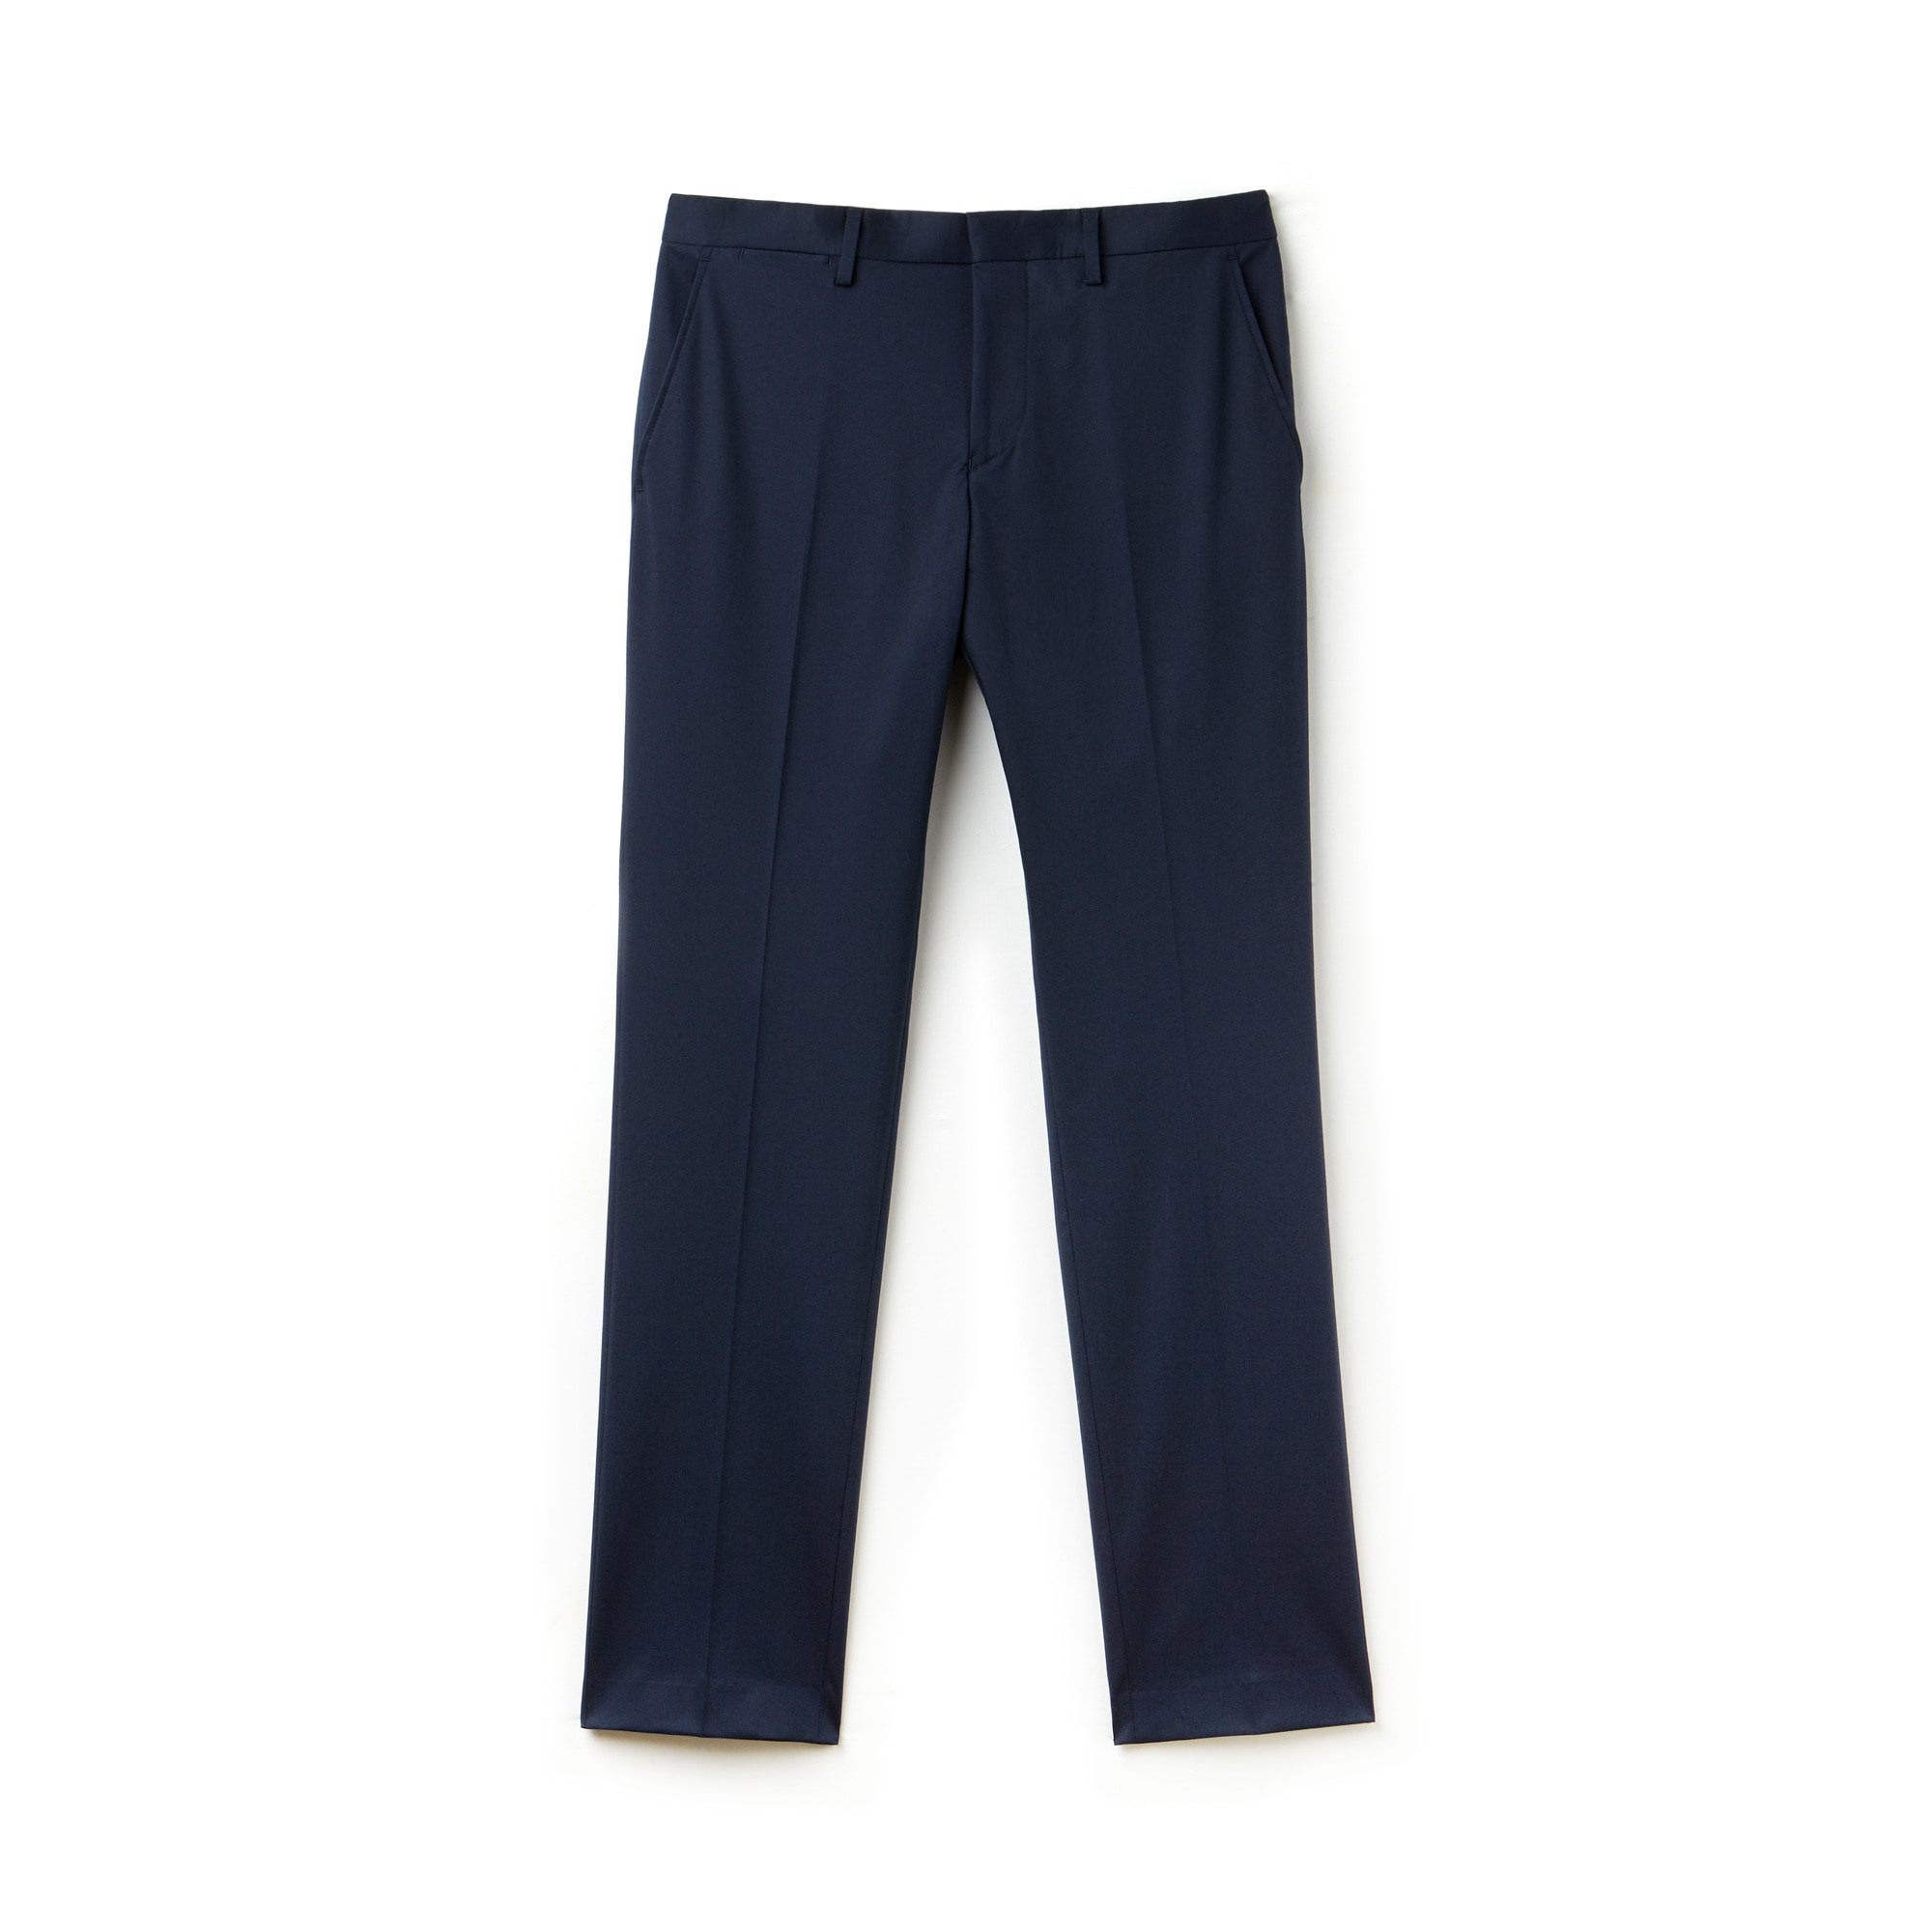 Men's Slim Fit Gabardine Pleated Chino Pants